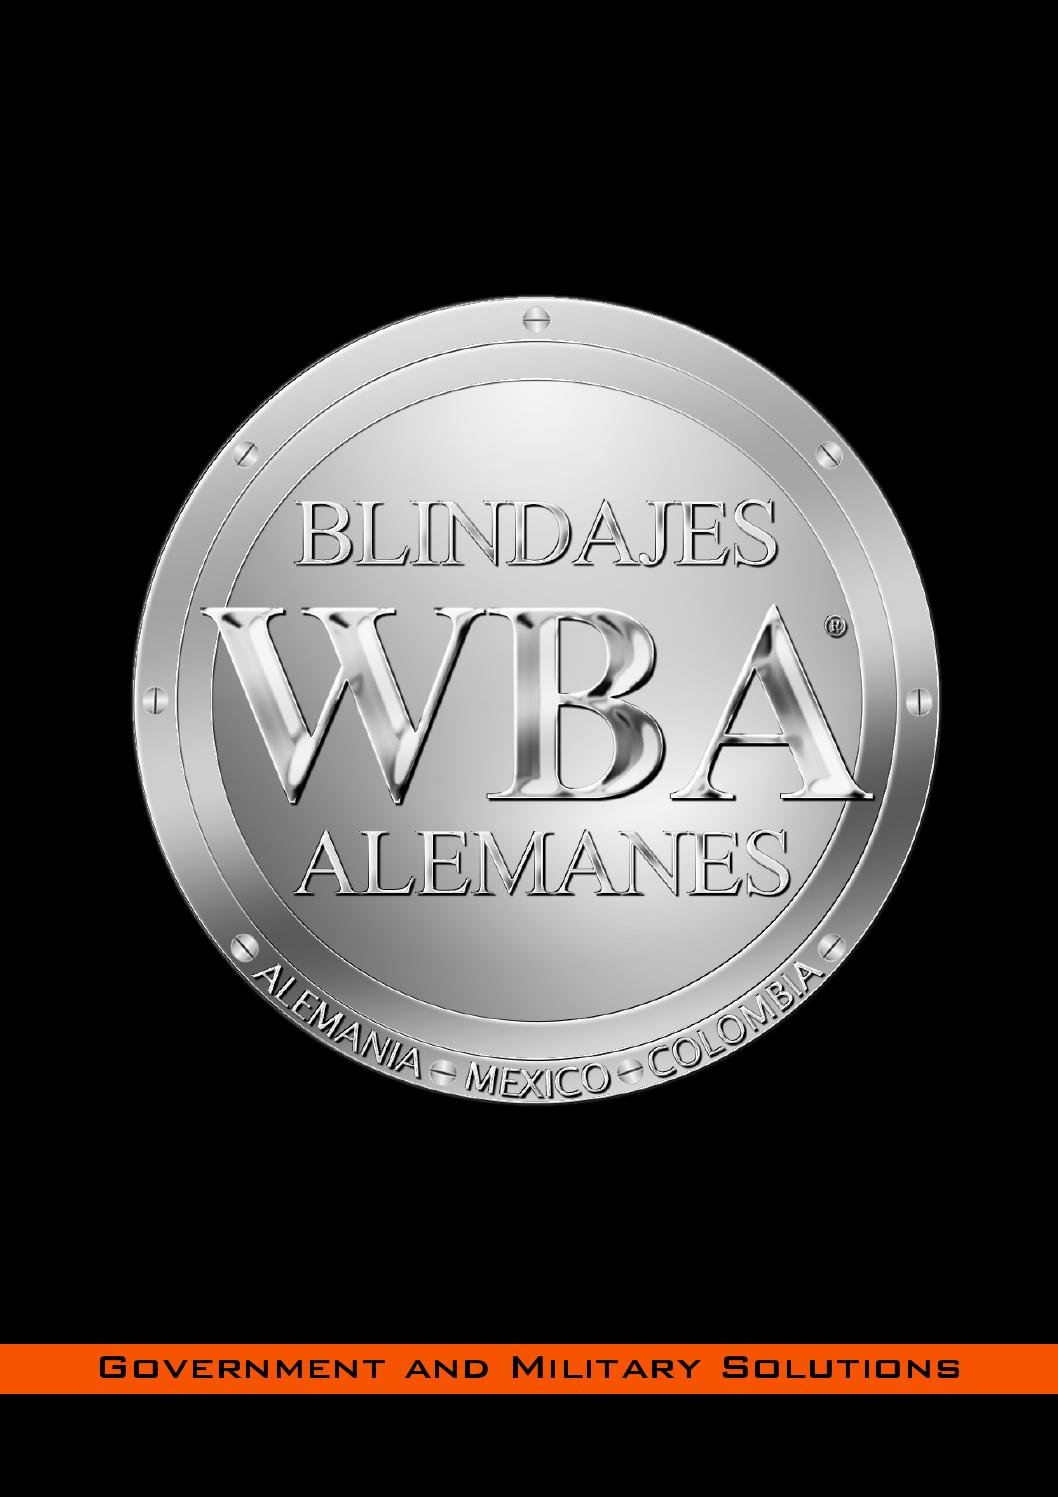 Wba blindajes alemanes catalogo militar y de gob by for Poco reutlingen